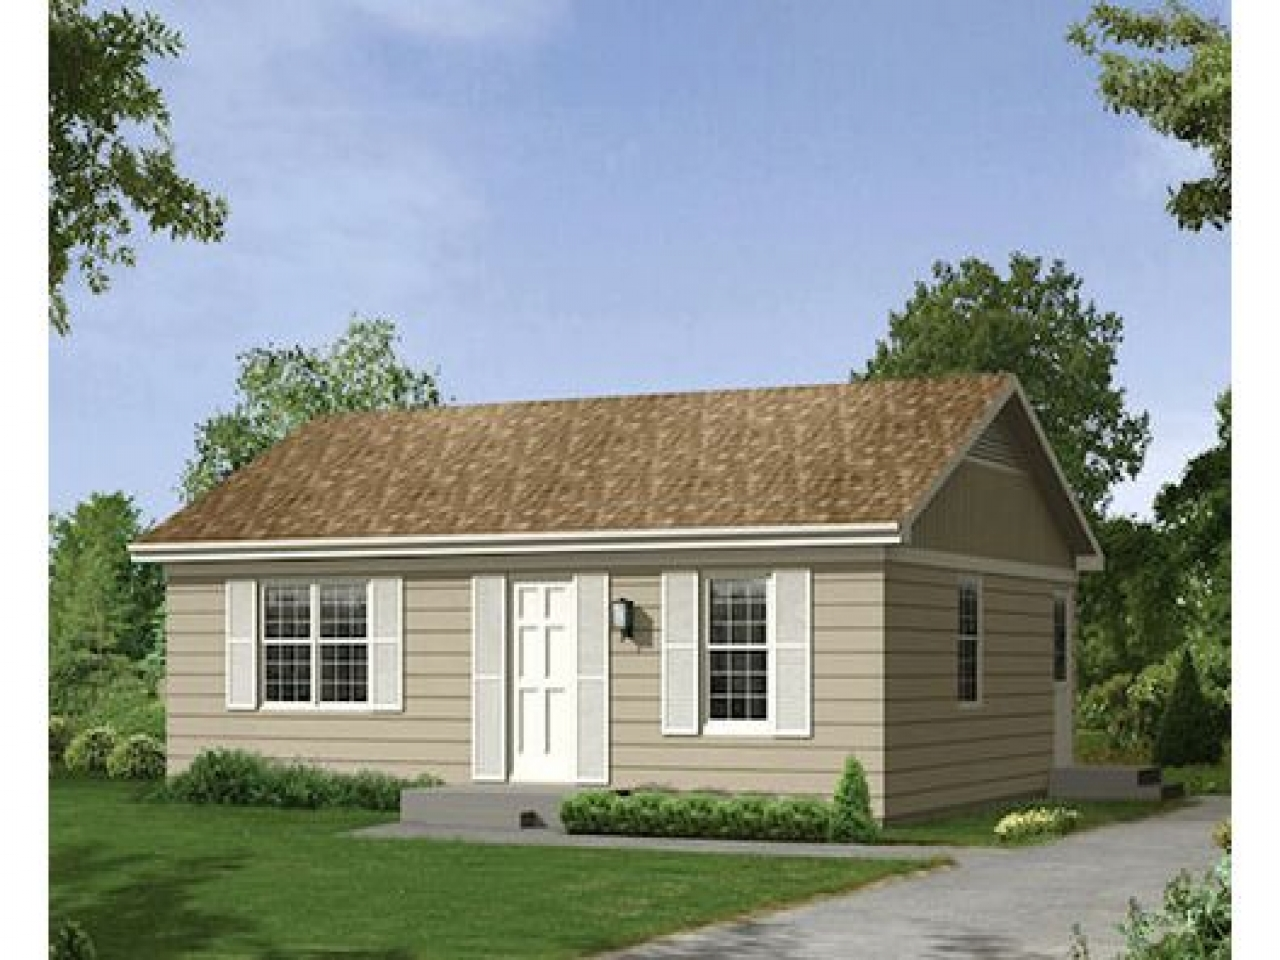 2 bedroom 800 square foot house plans small square bedroom for 800 square foot